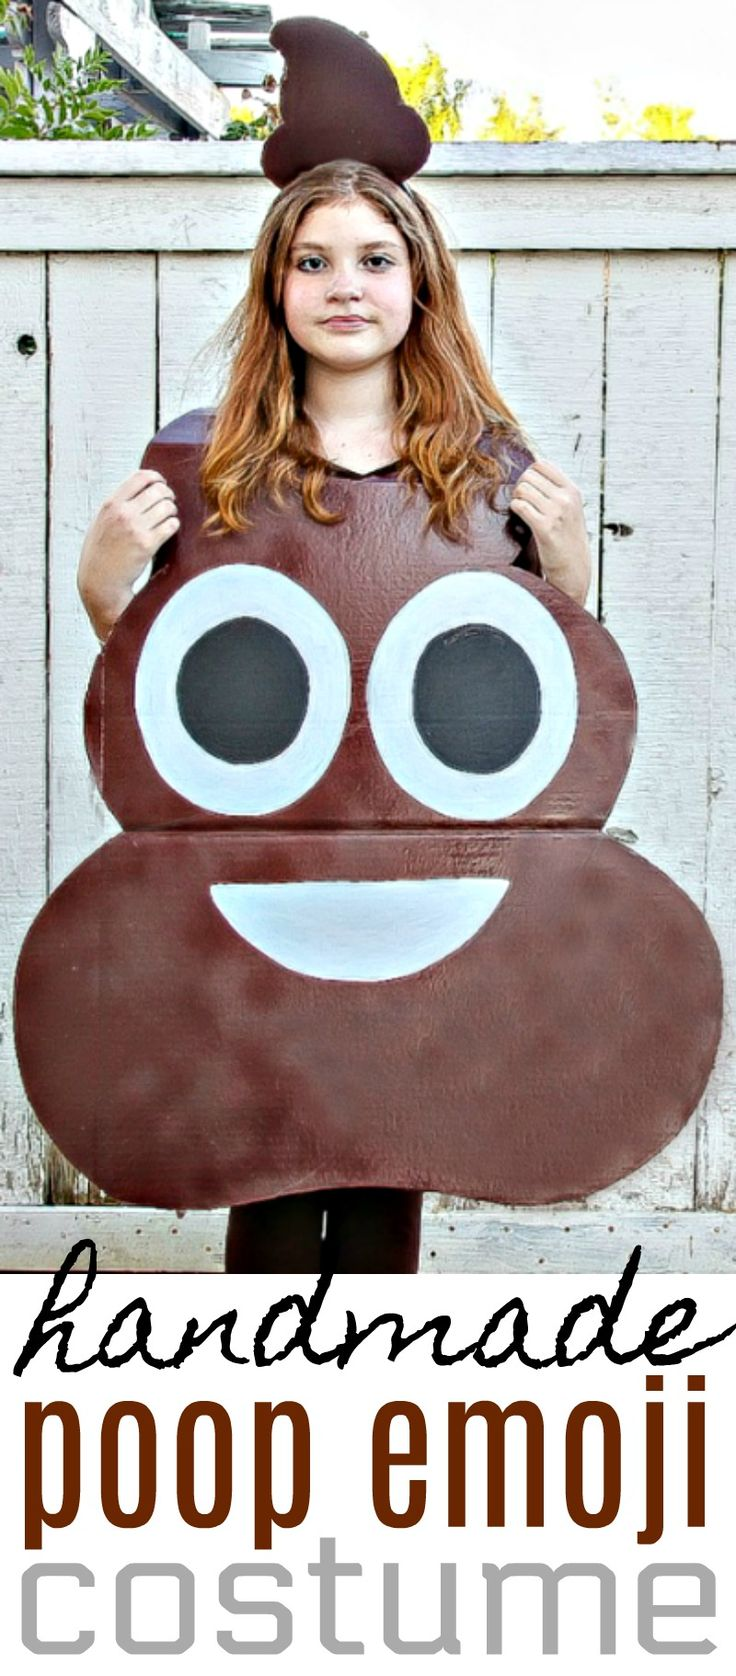 How to Make A Poop Emoji Costume For Kids - Easy DIY Halloween Costume - 5 Minutes for Mom